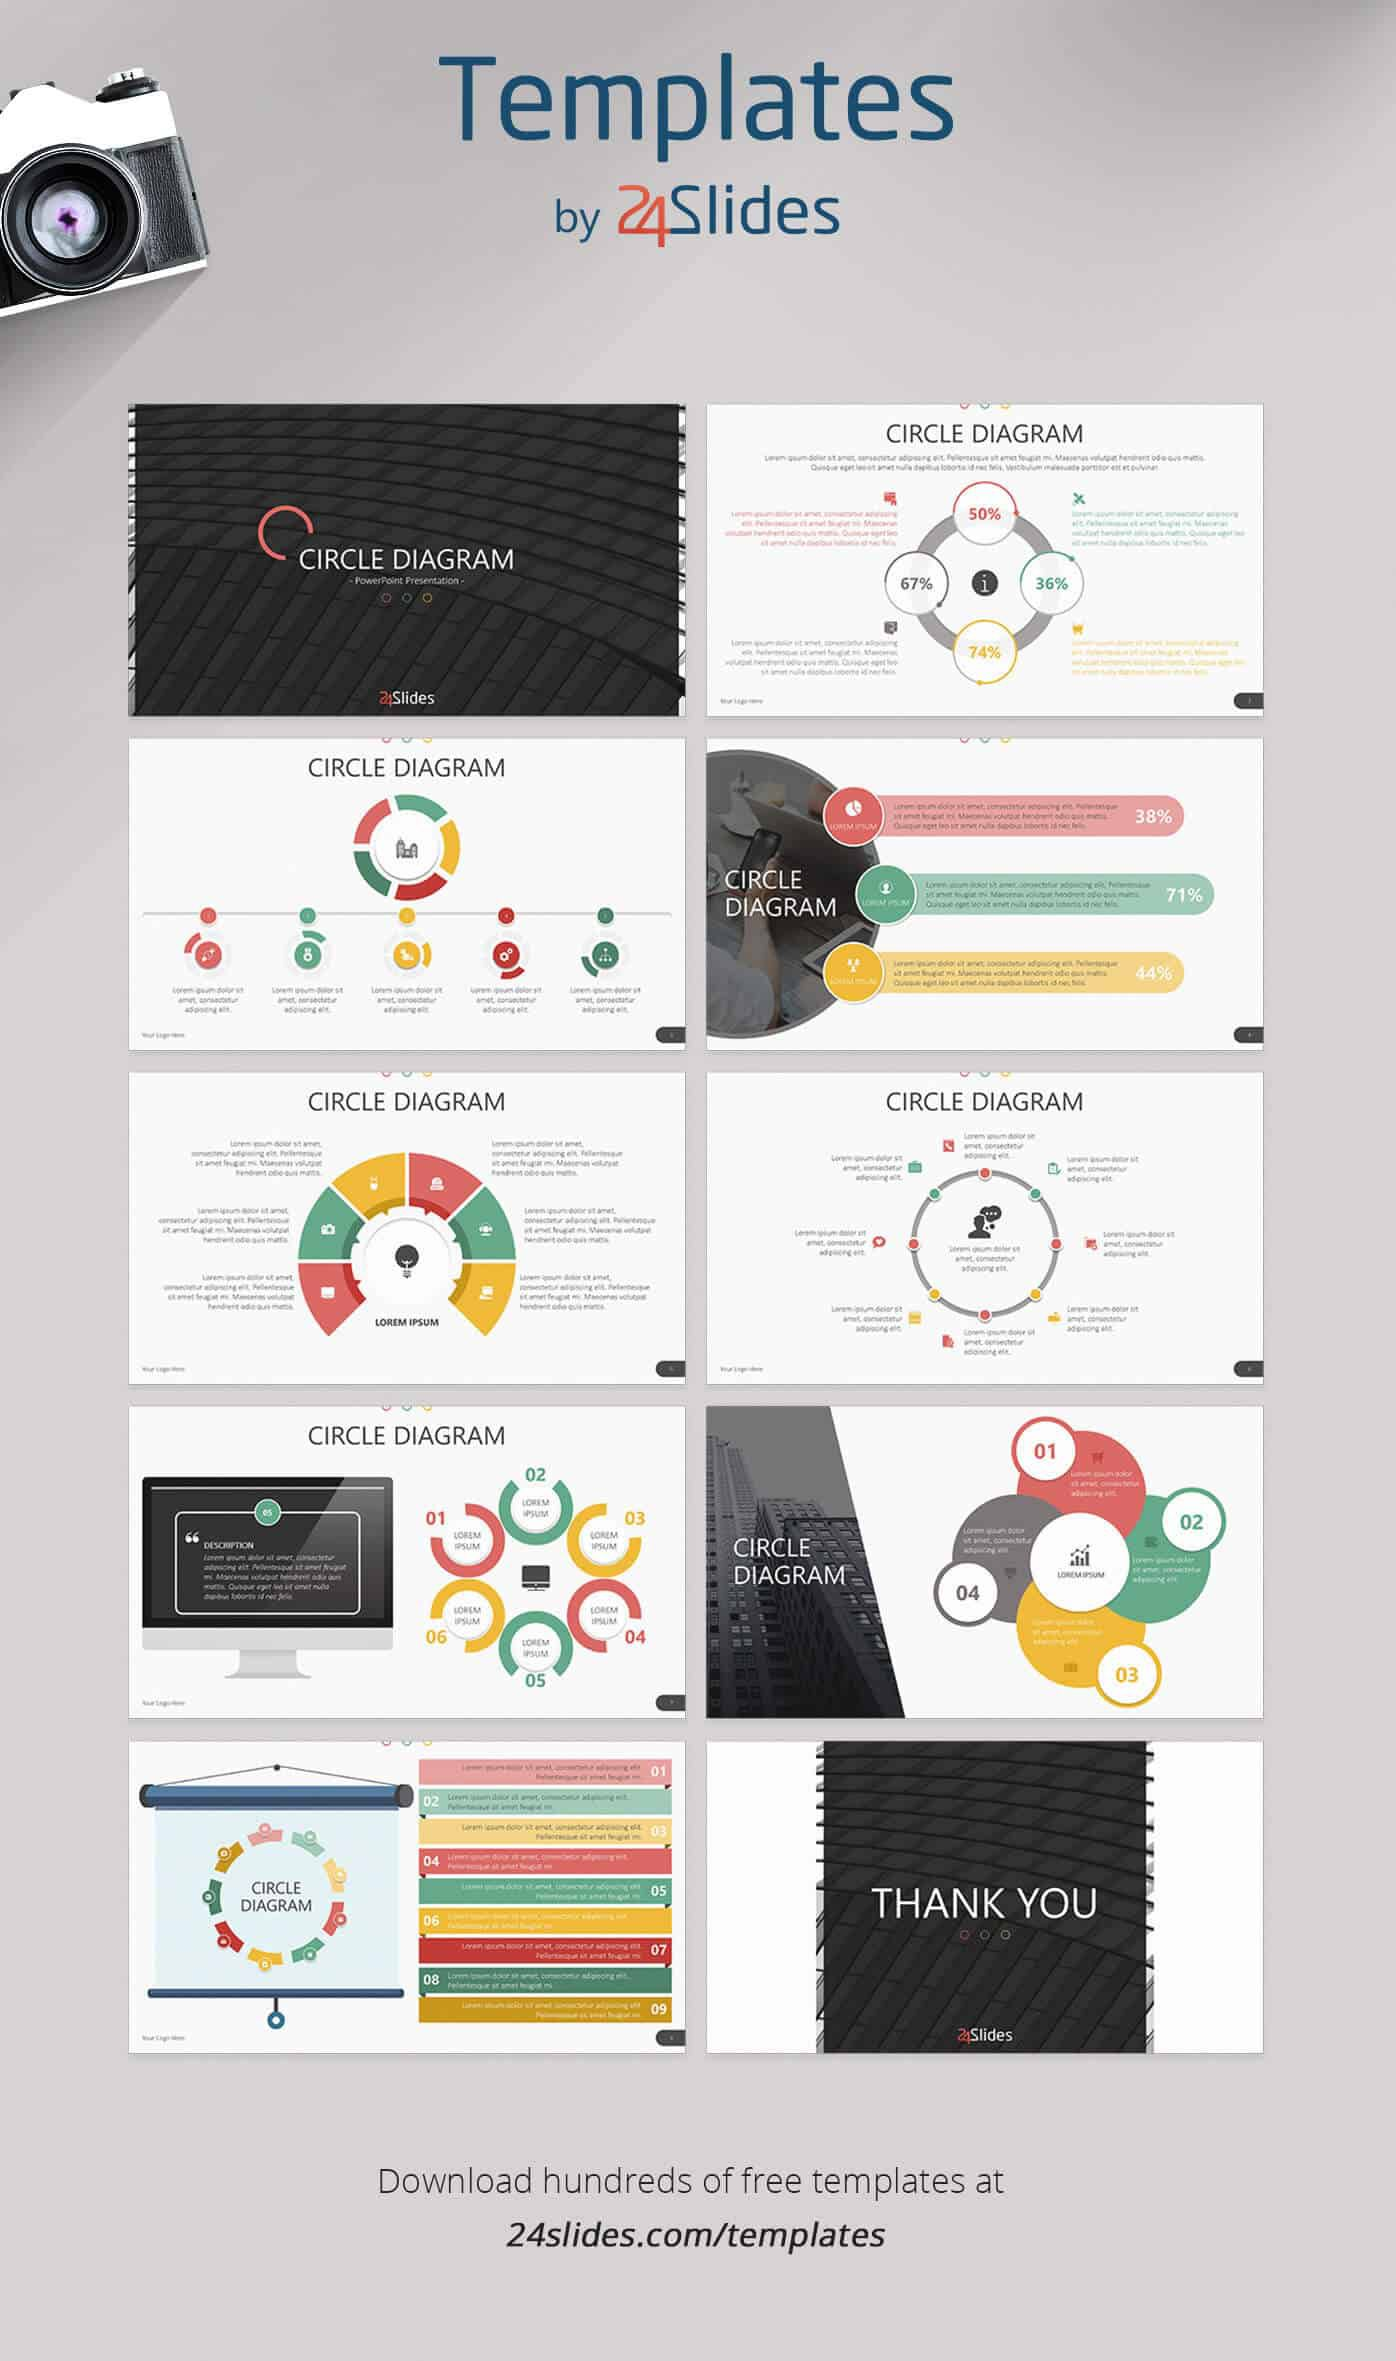 000 Amazing Power Point Presentation Template Free Example  Powerpoint Layout Download 2019 Modern BusinesFull